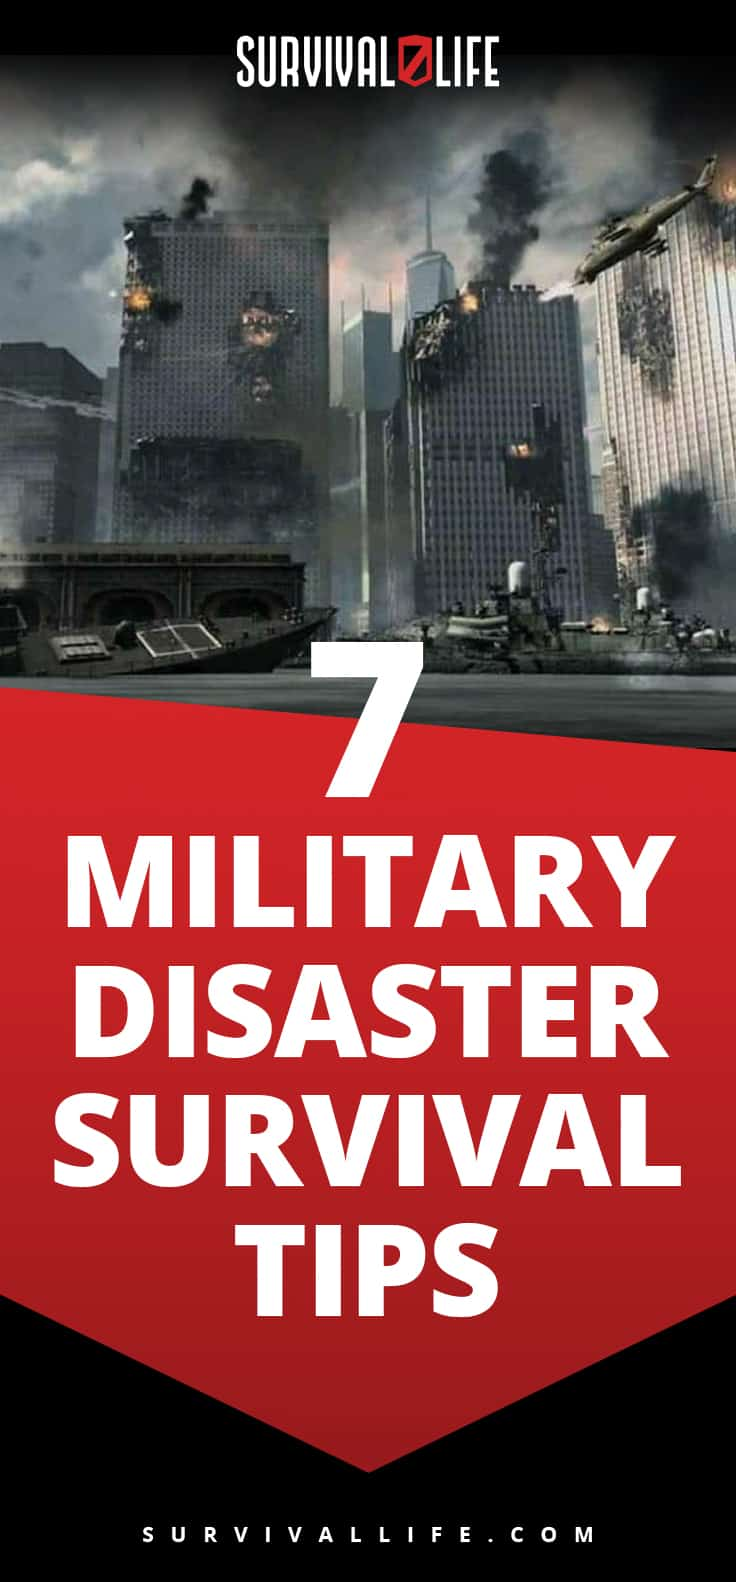 Military Disaster Survival Tips | Survival Life | https://survivallife.com/military-disaster-survival-tips/